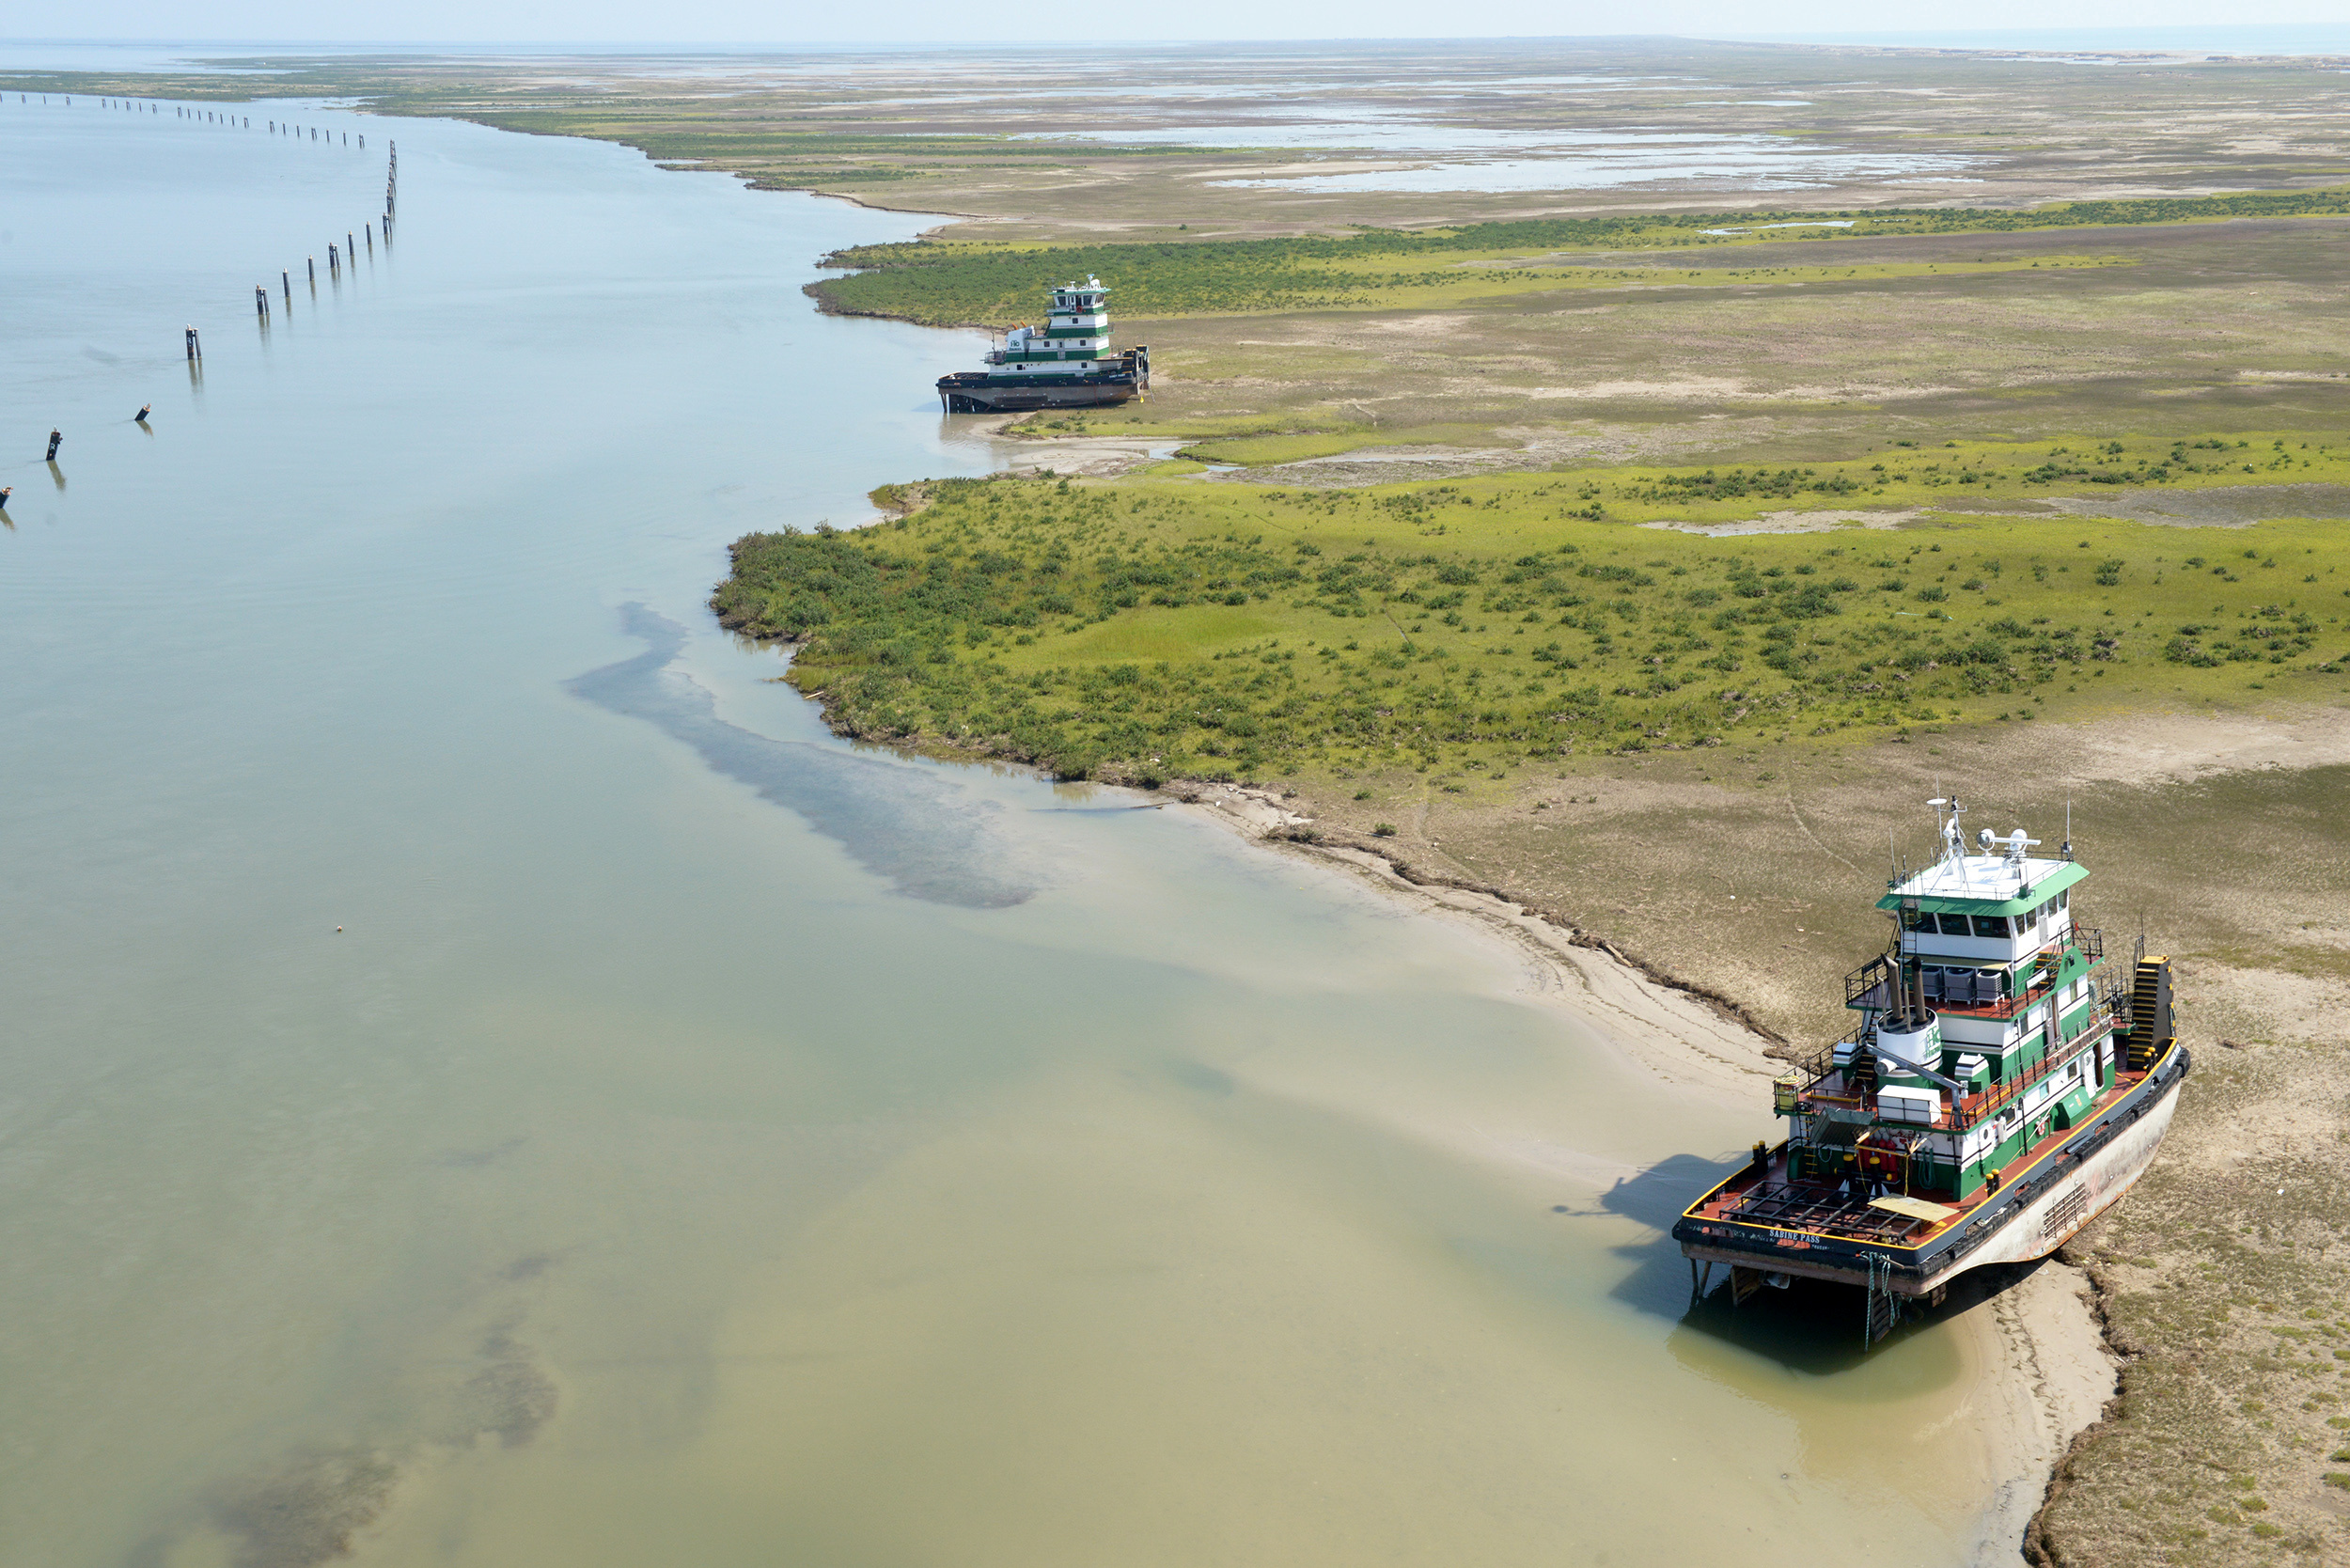 Vessels rest on the bank after running aground during Hurricane Harvey.